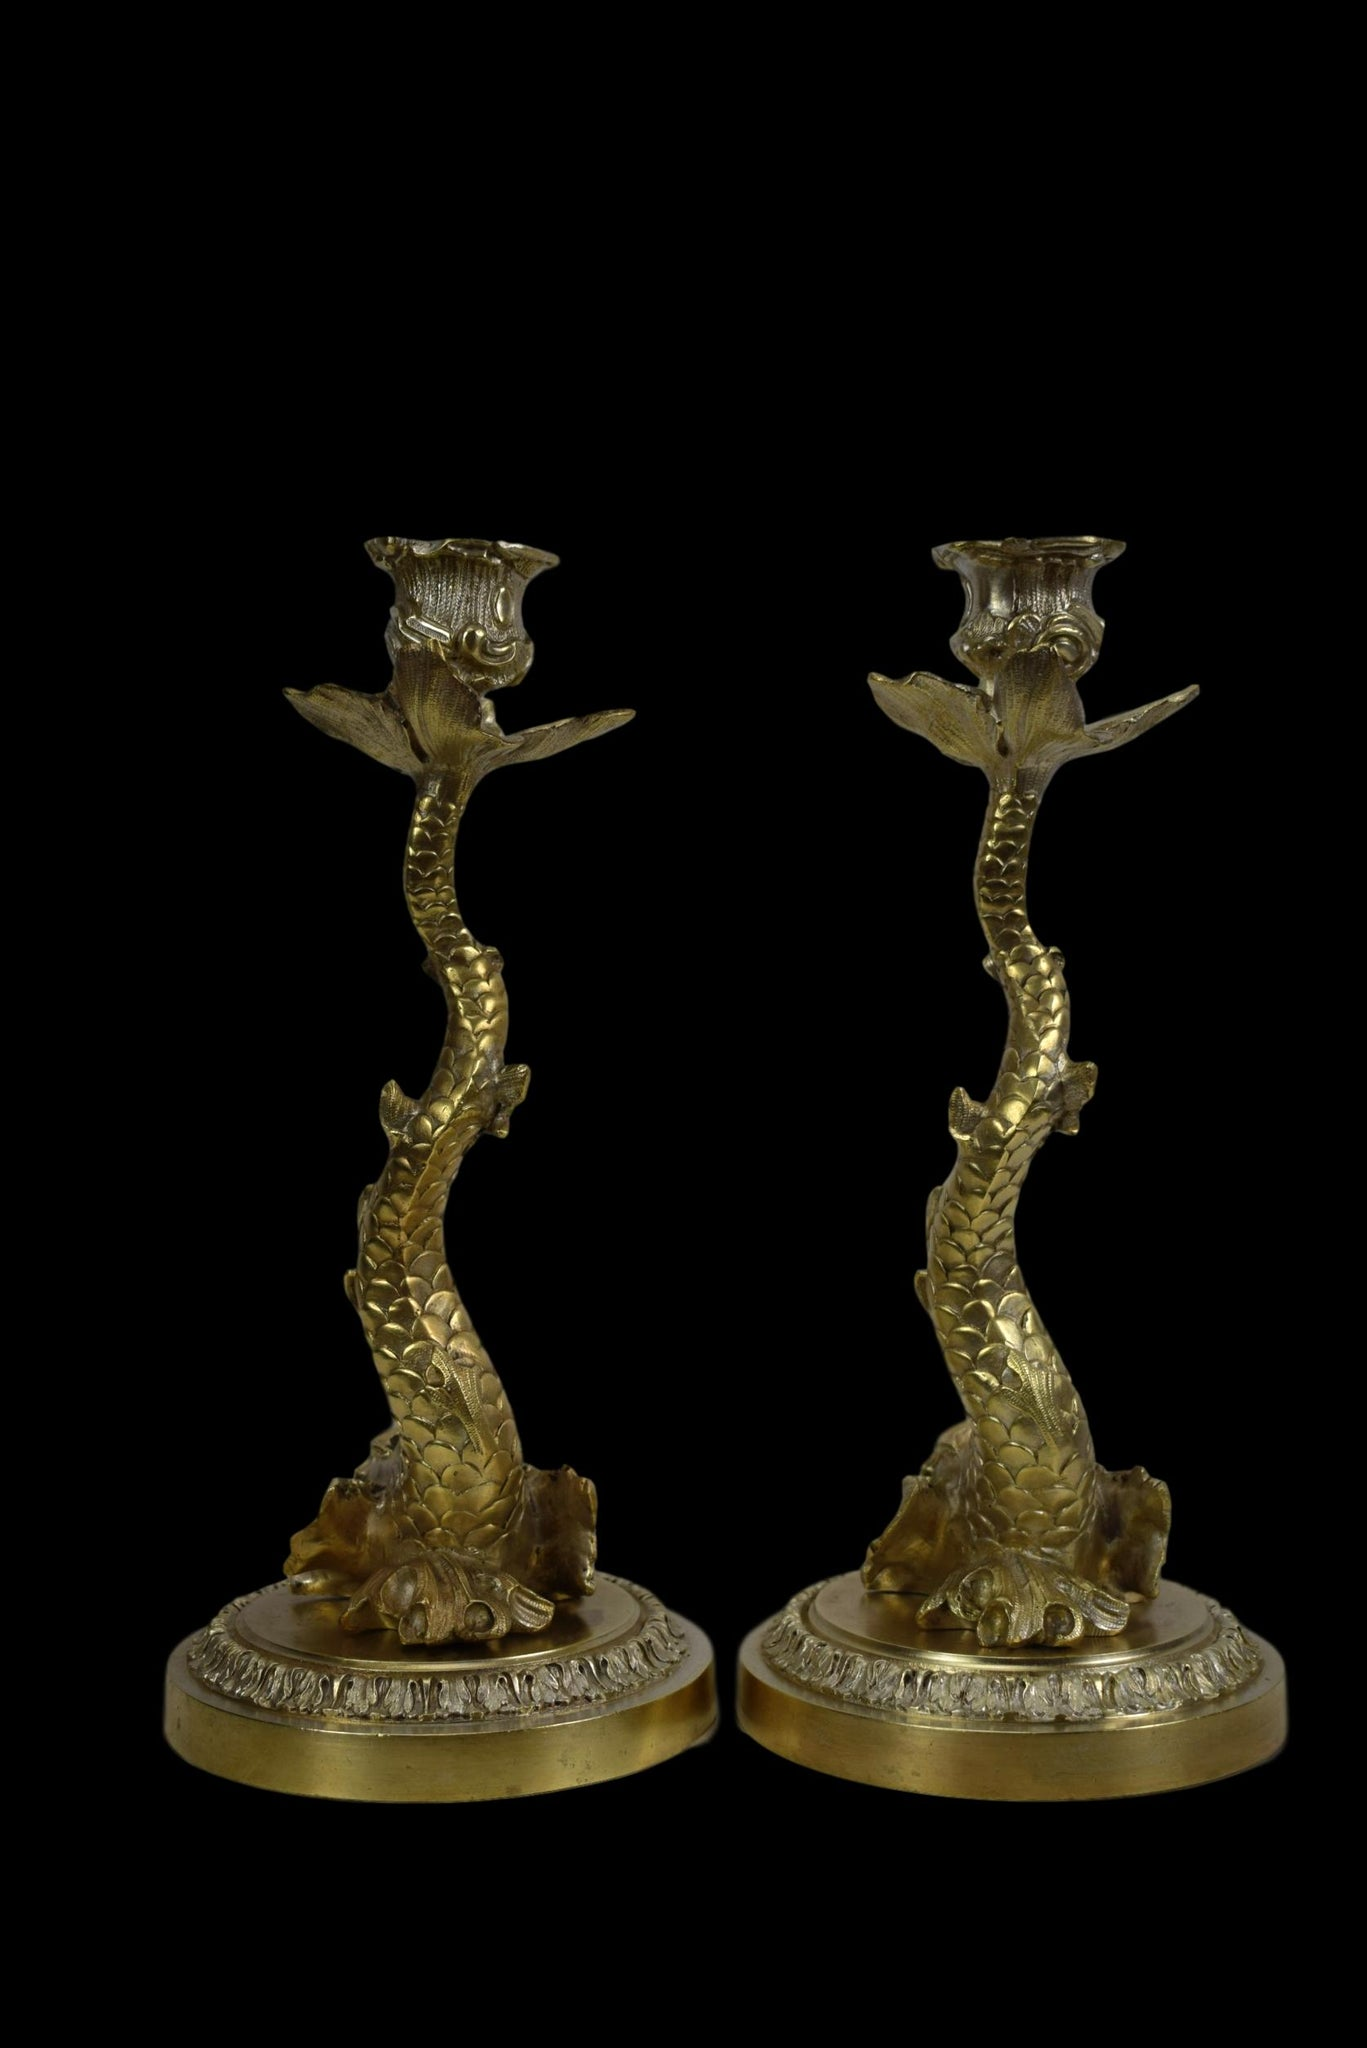 Dolphin Bronze Candlesticks - Charmantiques